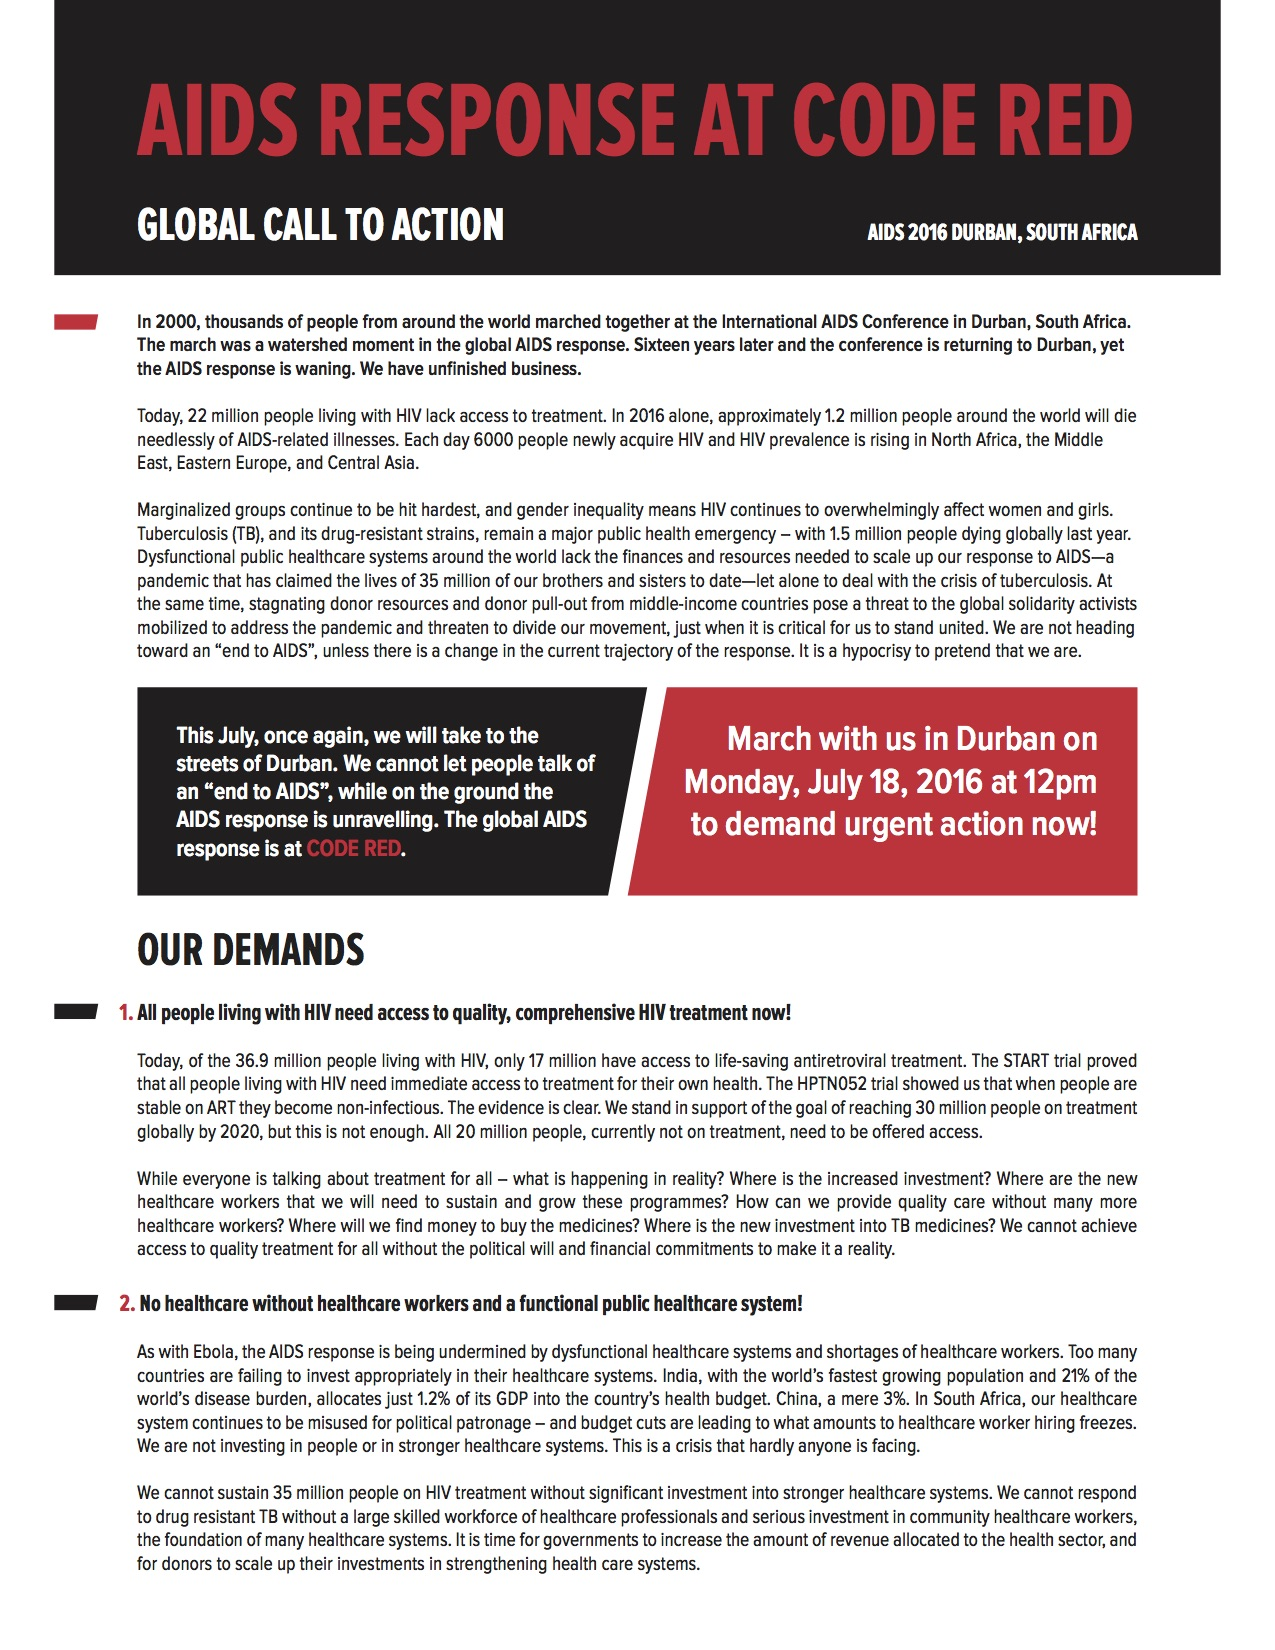 Call to Action Page 1